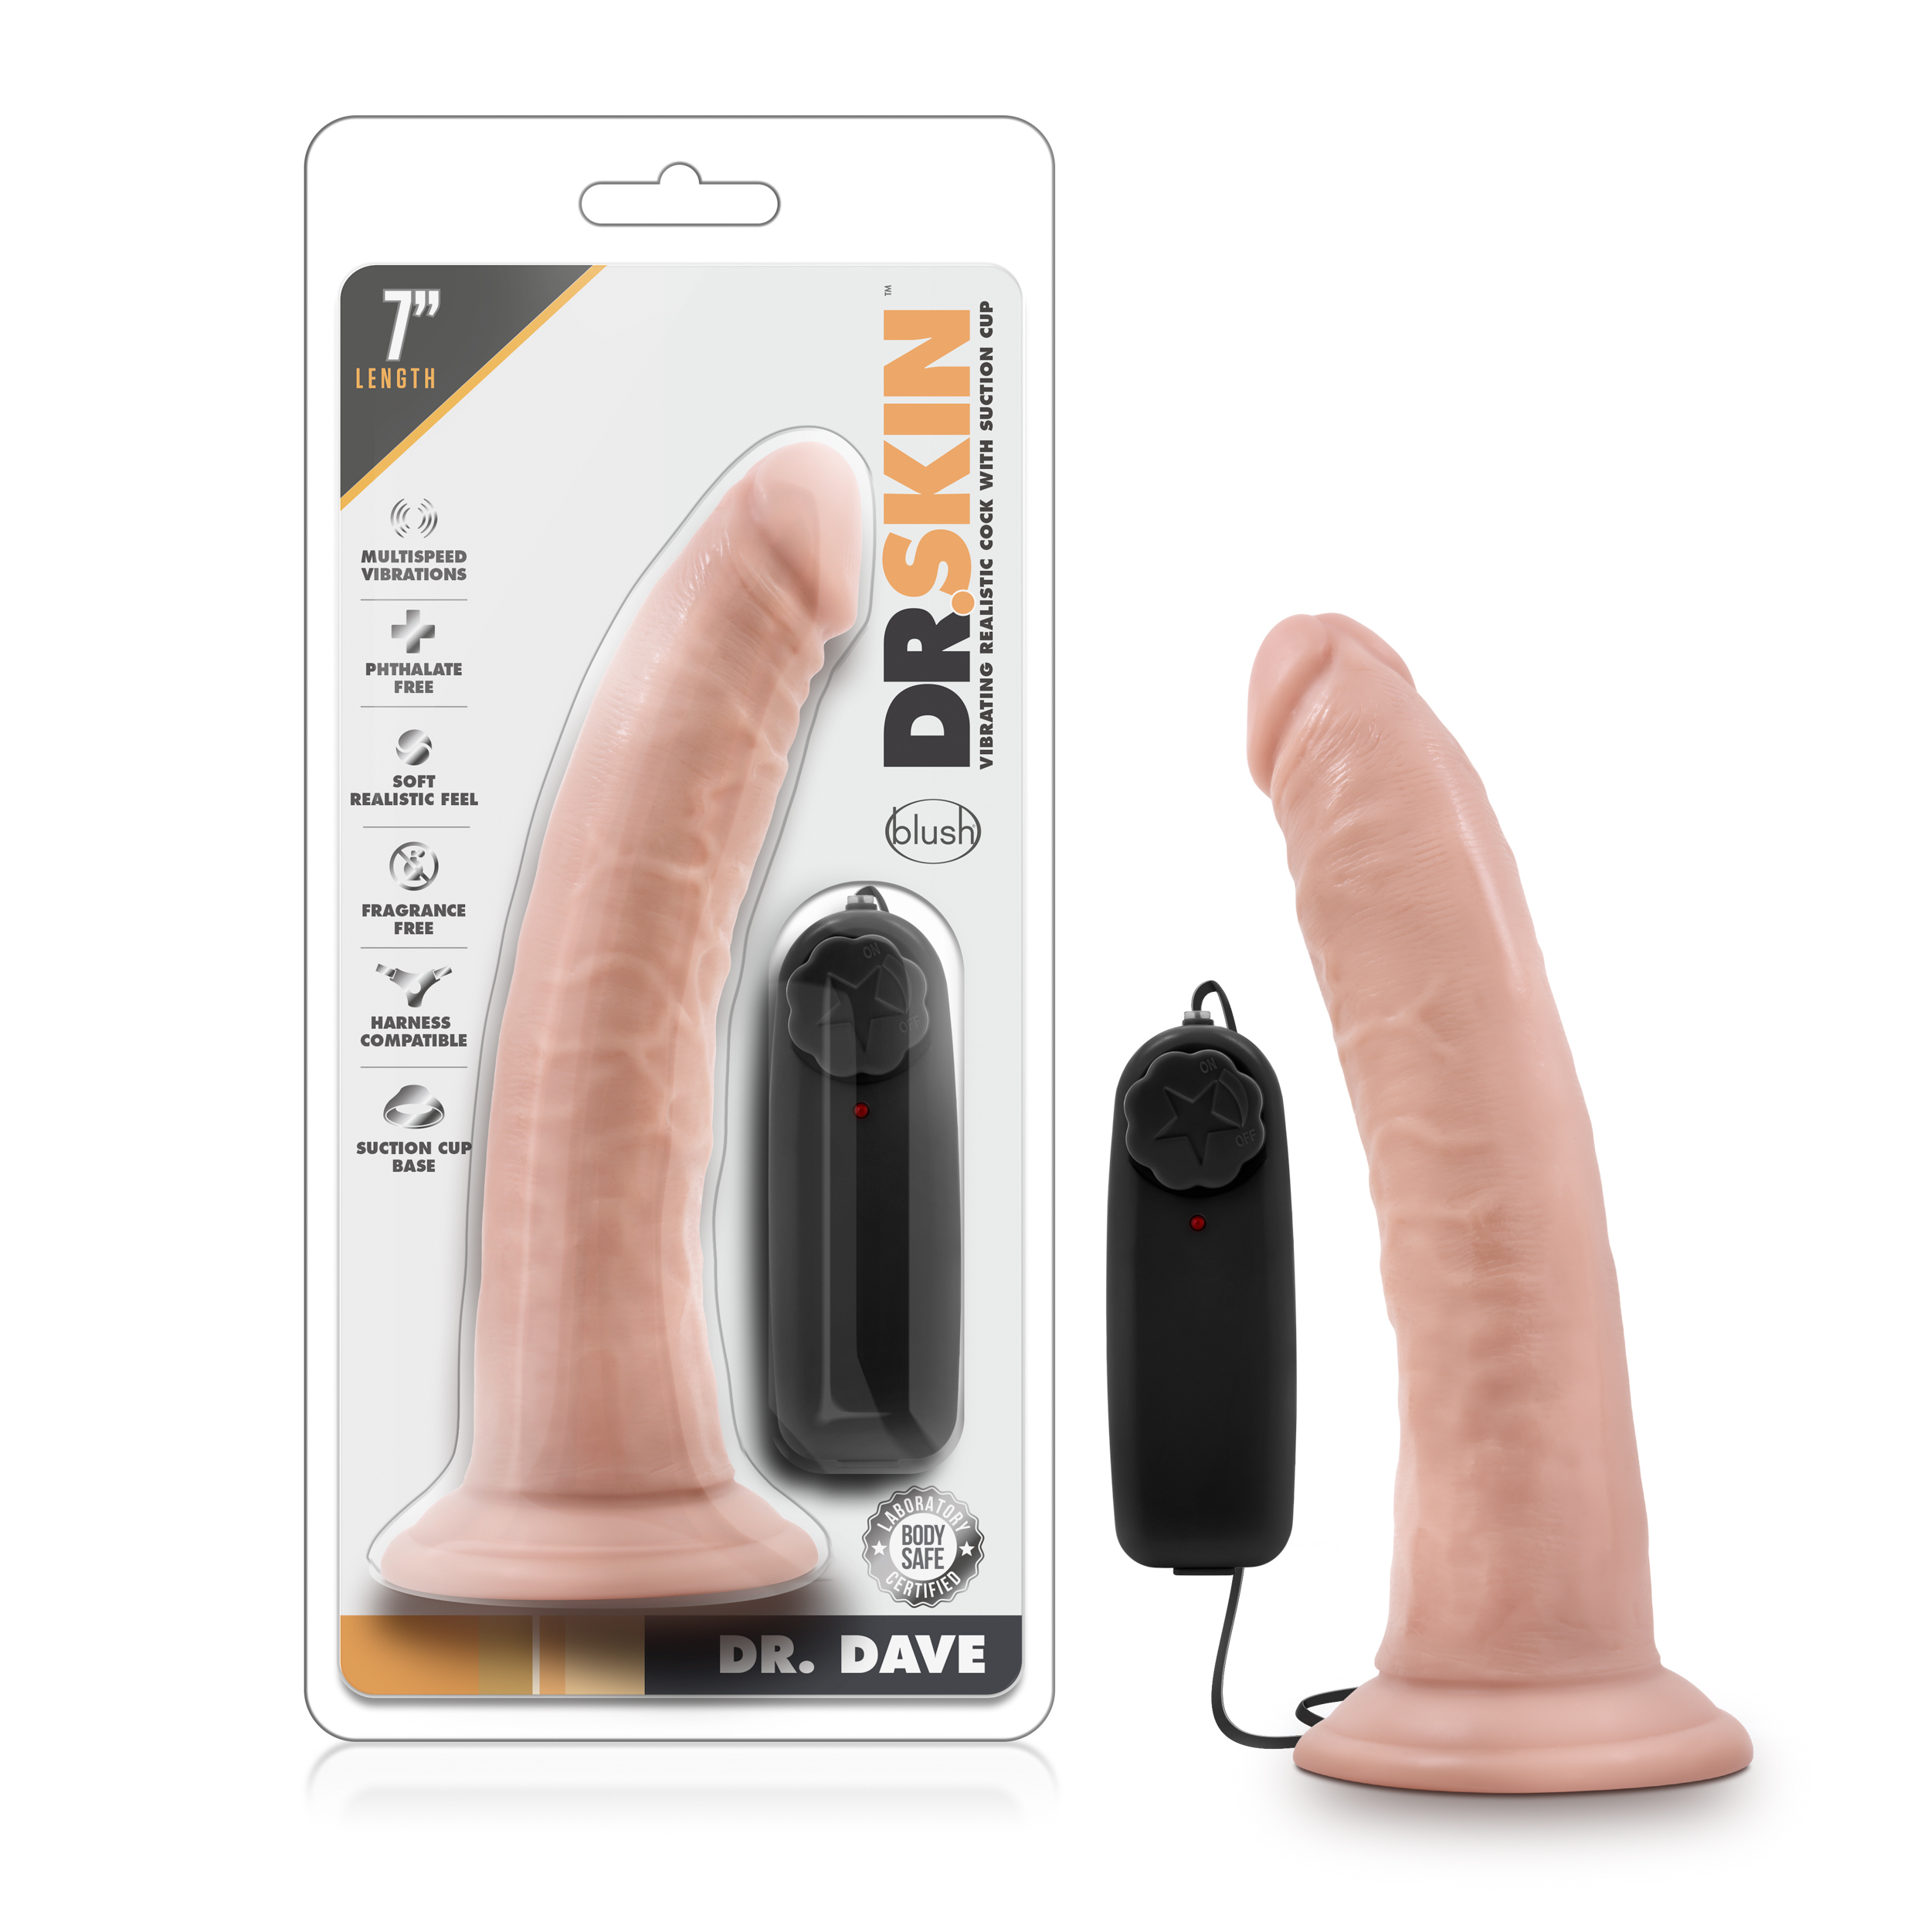 Dr. Skin - Dr. Dave - 7 Inch Vibrating Cock with Suction Cup - Vanilla